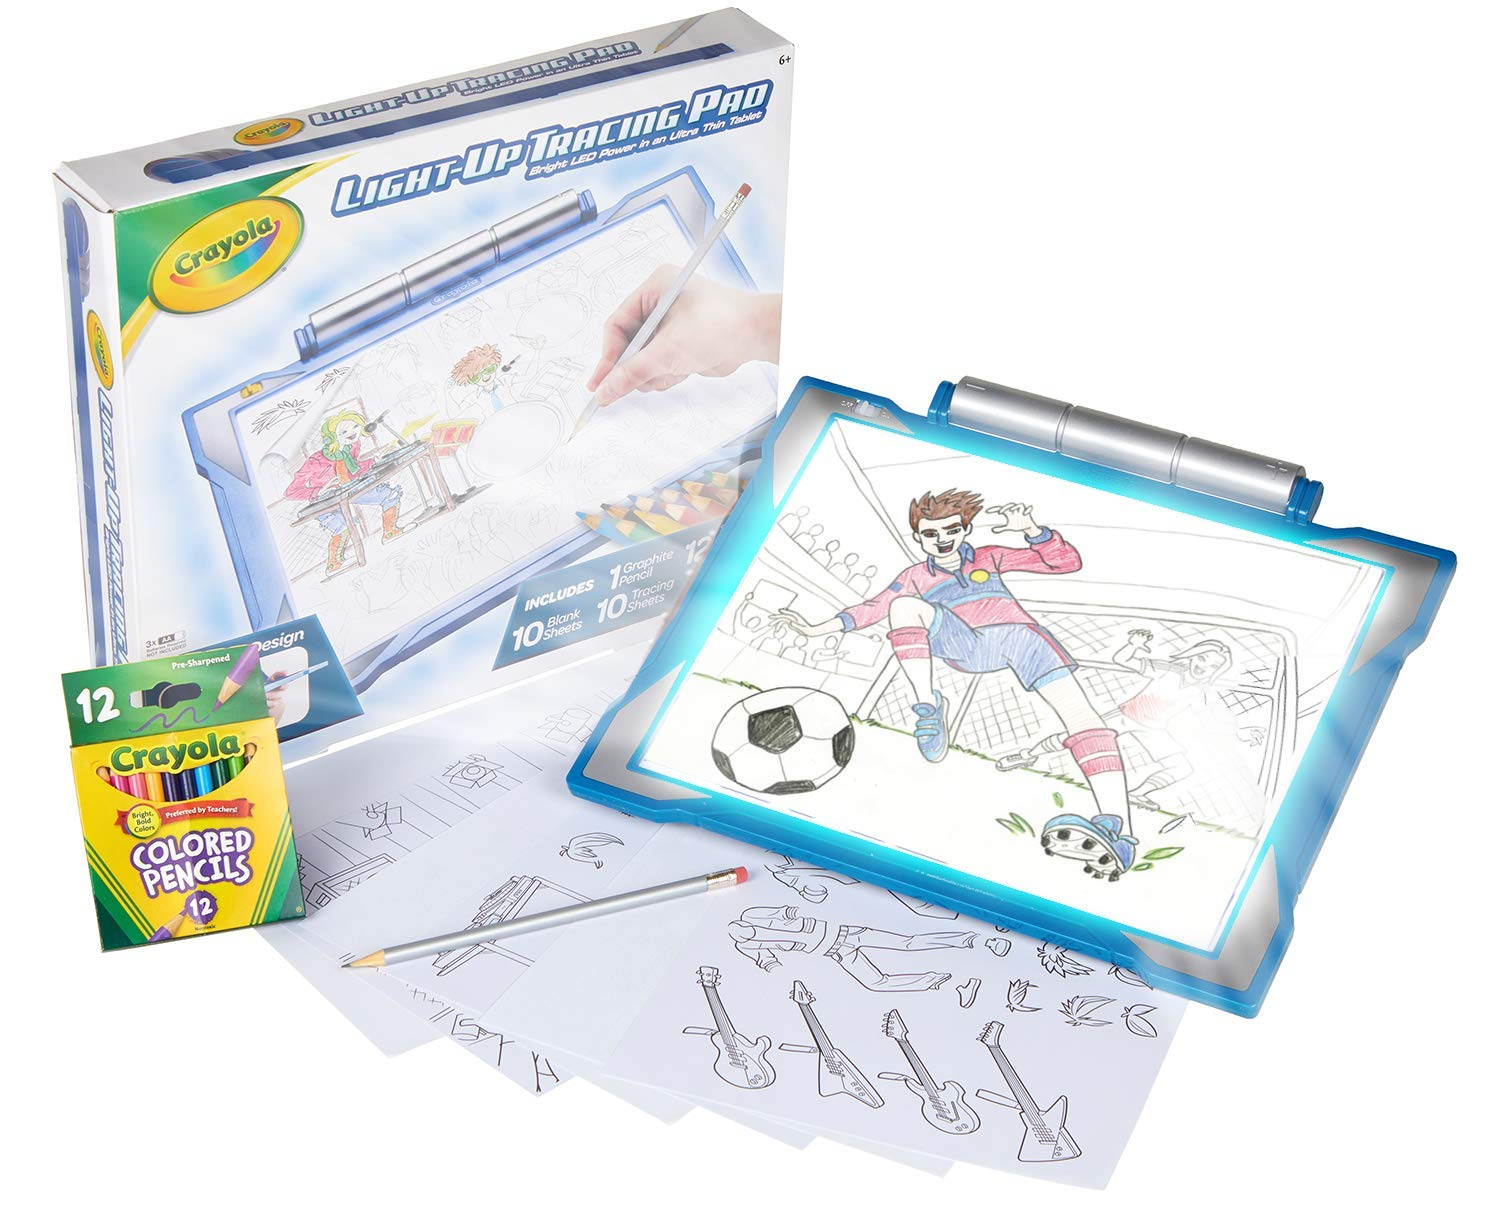 Crayola Light Up Tracing Pad Blue, Amazon Exclusive, Toys, Gift for Boys, Ages 6, 7, 8, 9, 10